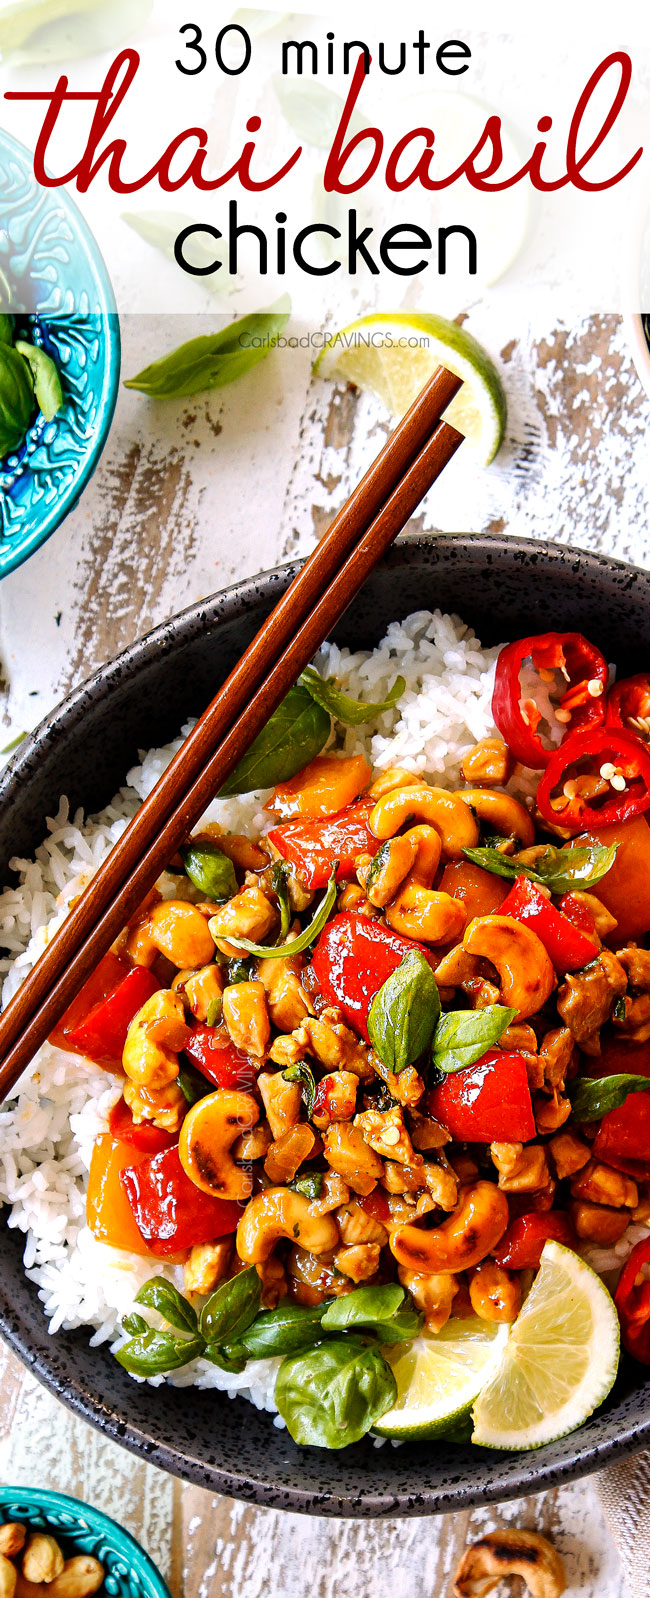 Top view of Thai Basil Chicken in a bowl garnished with cashews